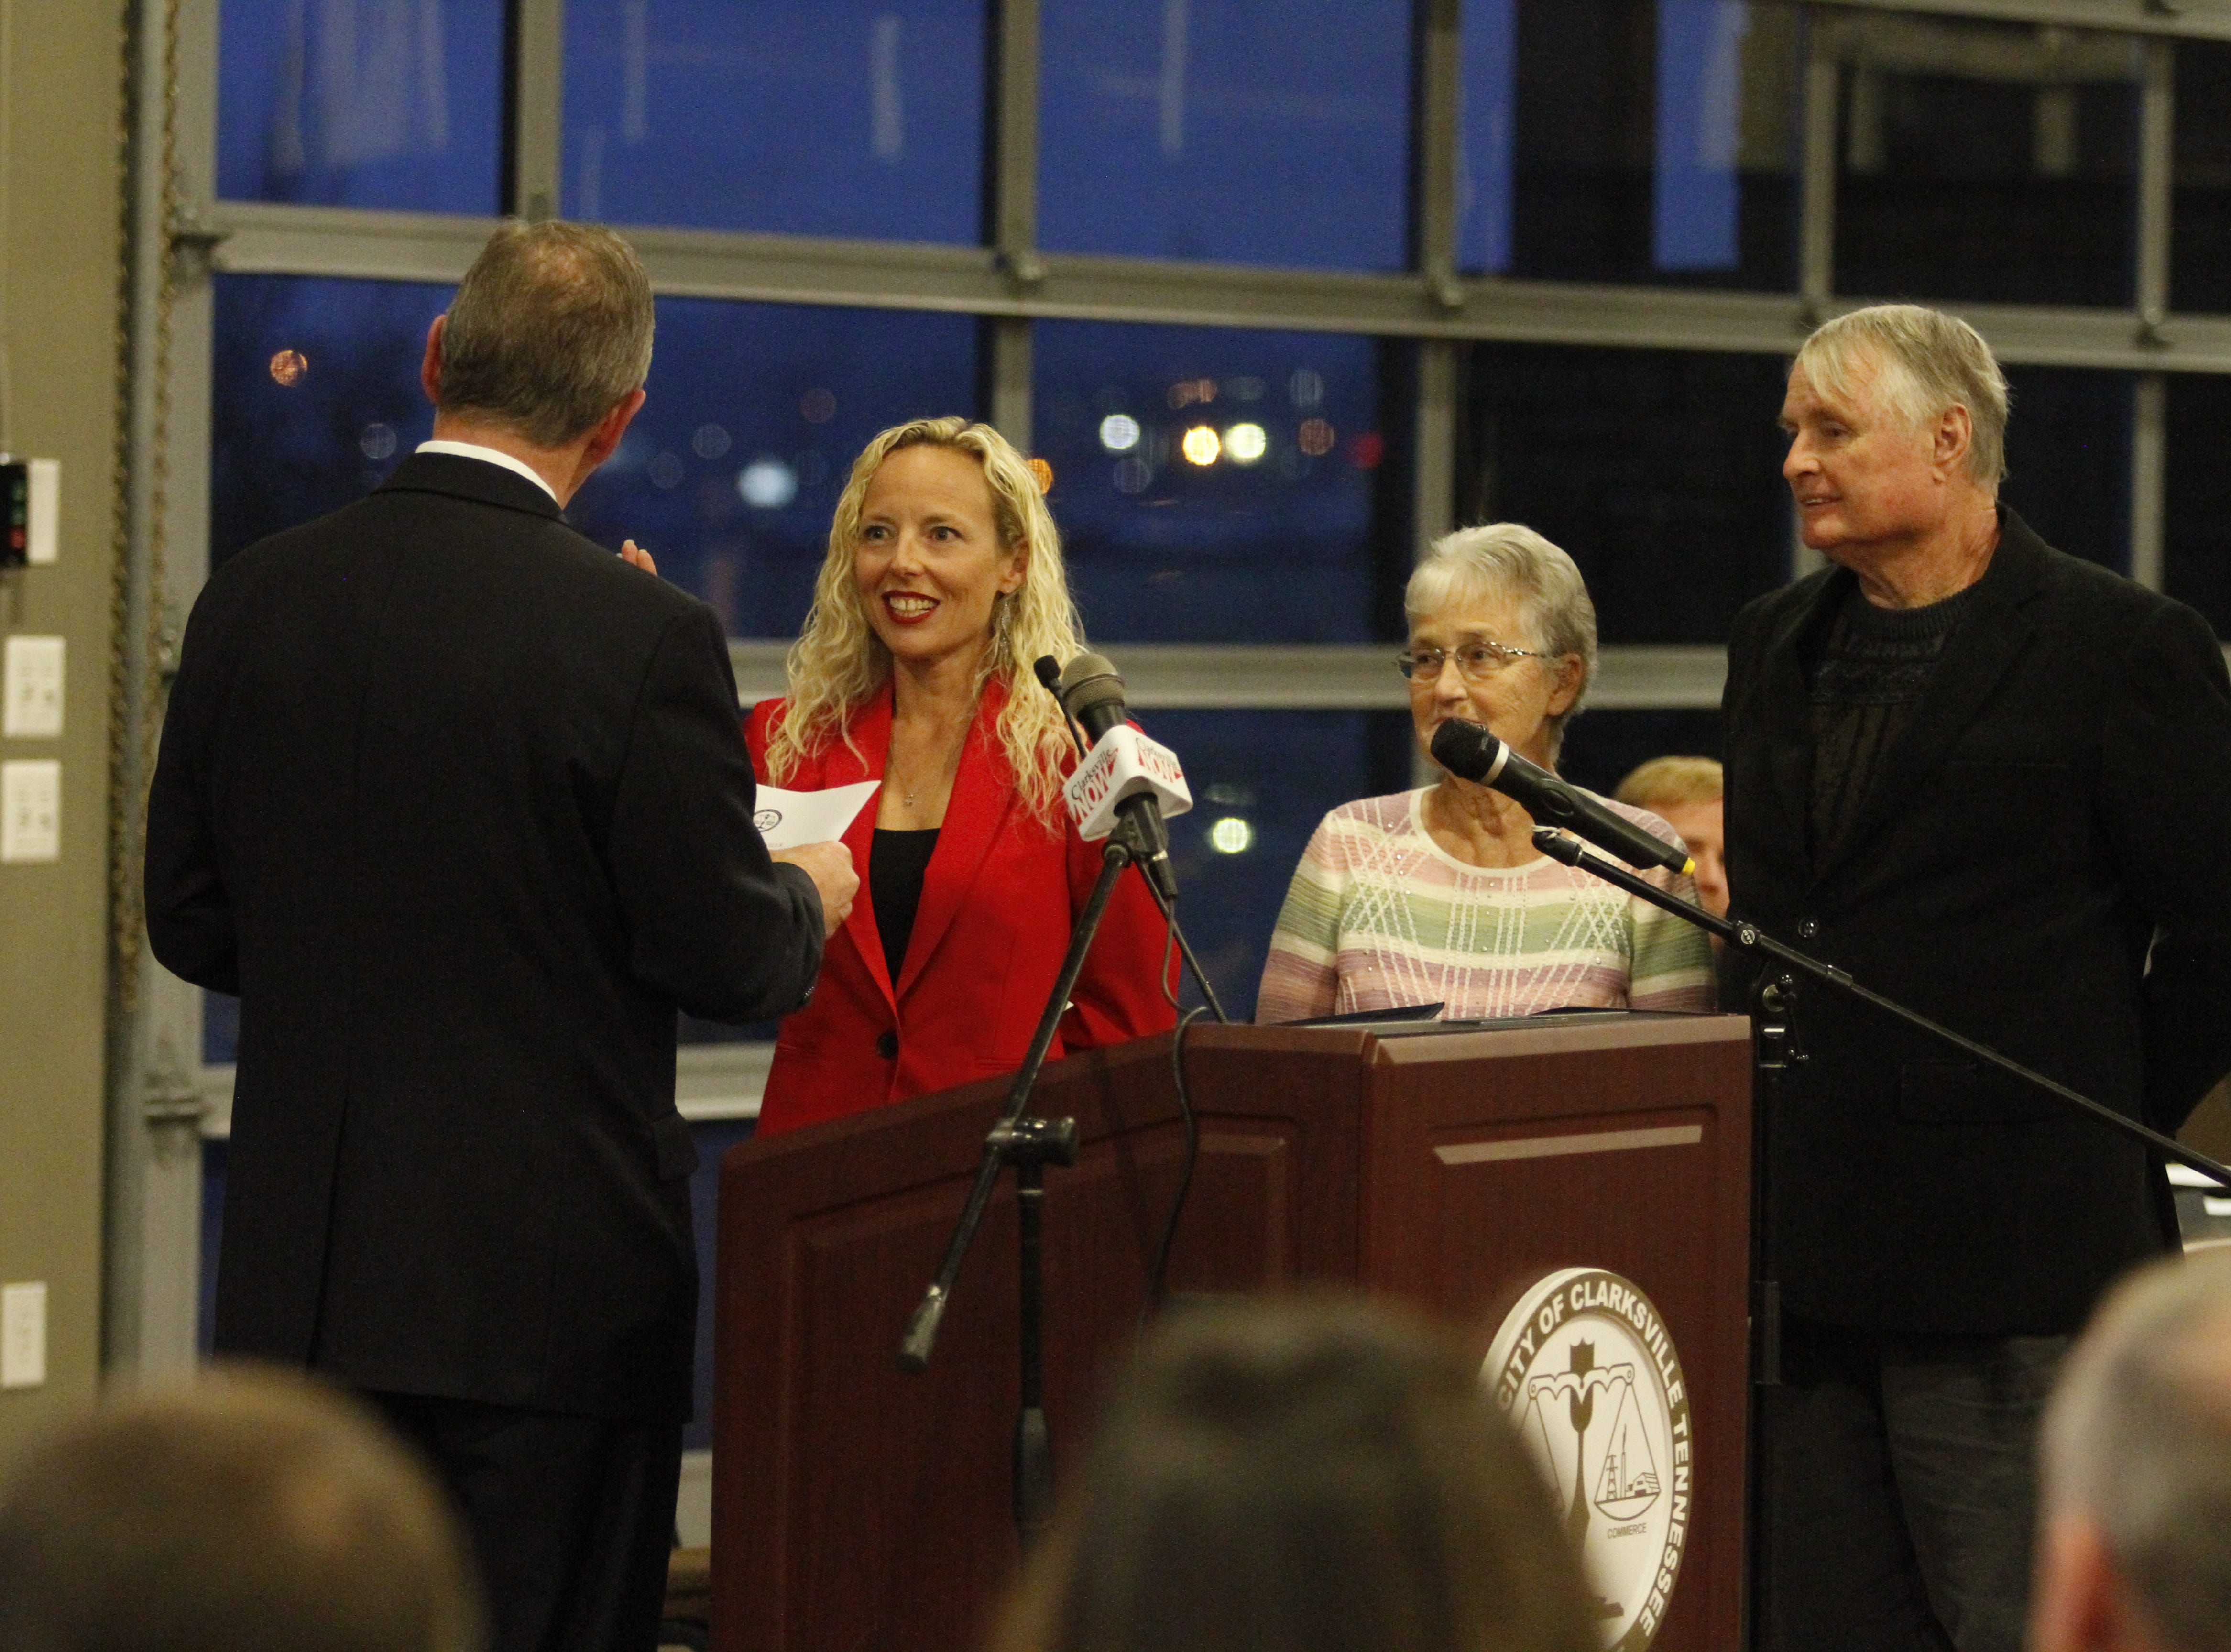 Mayor Joe Pitts swears in Ward 10 City Councilwoman Stacey Streetman on Wednesday, Jan. 2, 2019, at the Wilma Rudolph Event Center.